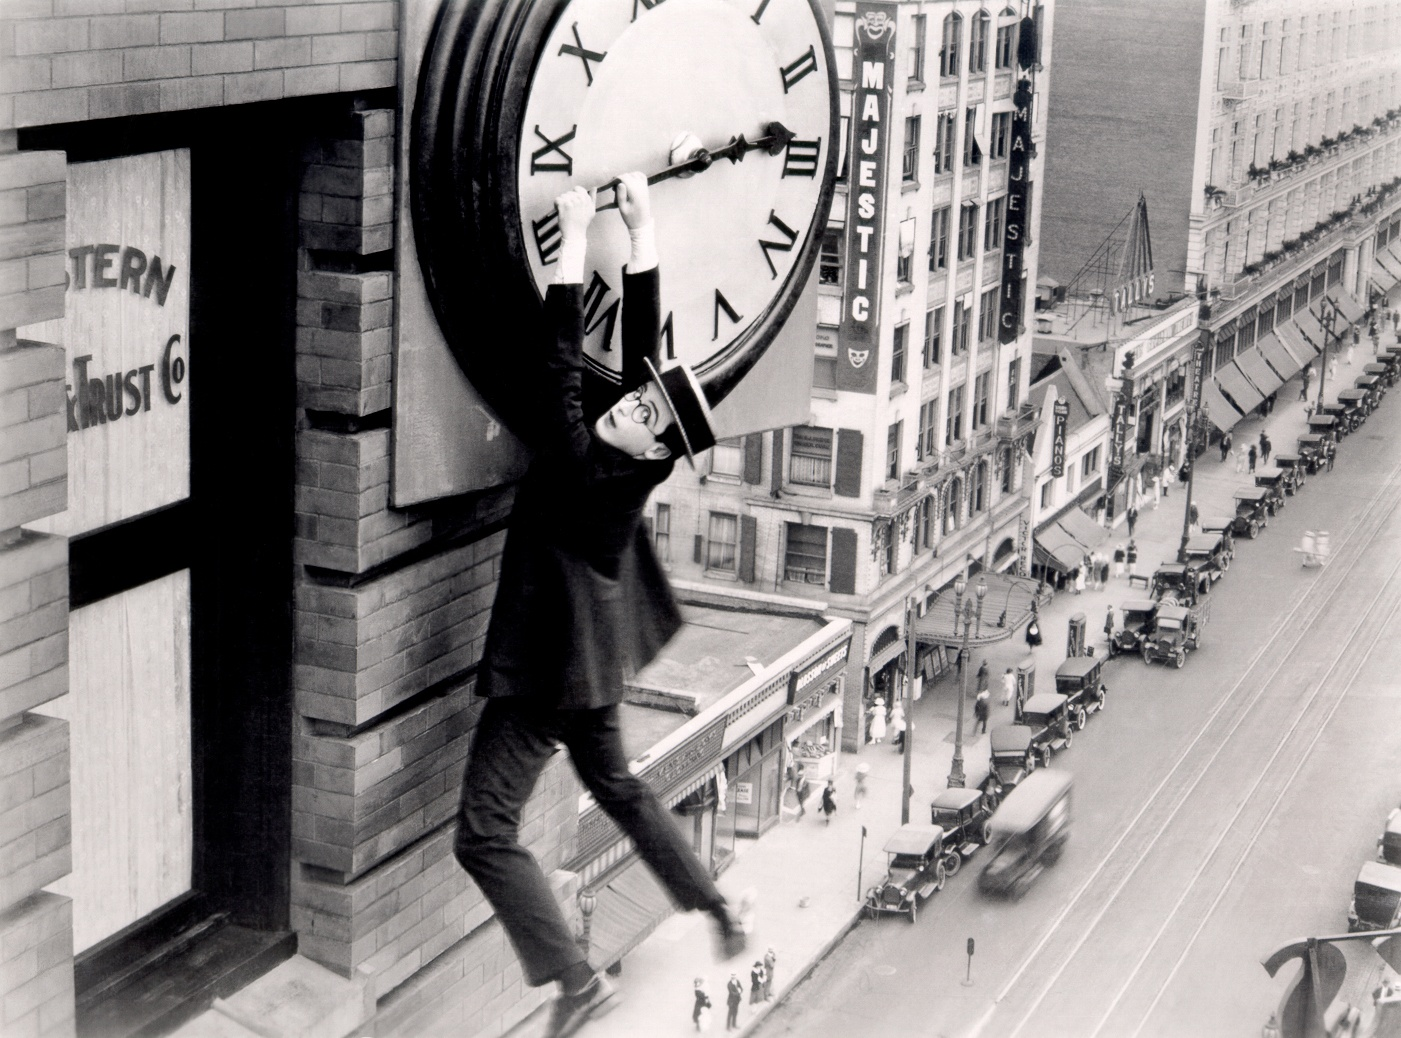 http://awwca.ca/wp-content/uploads/2013/08/Harold-Lloyd-in-Safety-Last.jpg